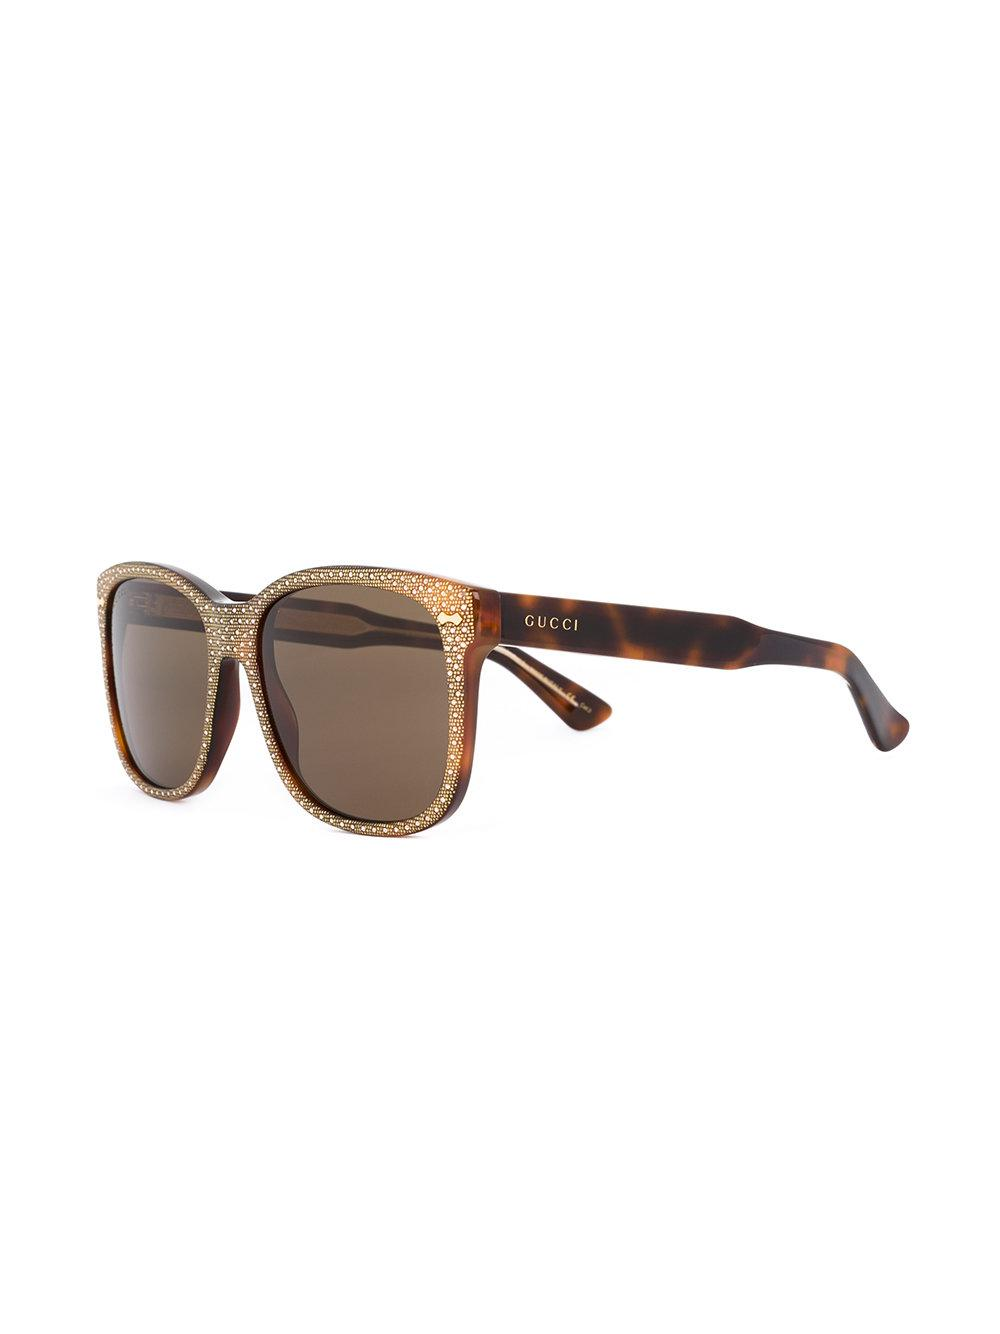 a352bface5a Gucci Square Frame Rhinestone Sunglasses in Brown - Lyst